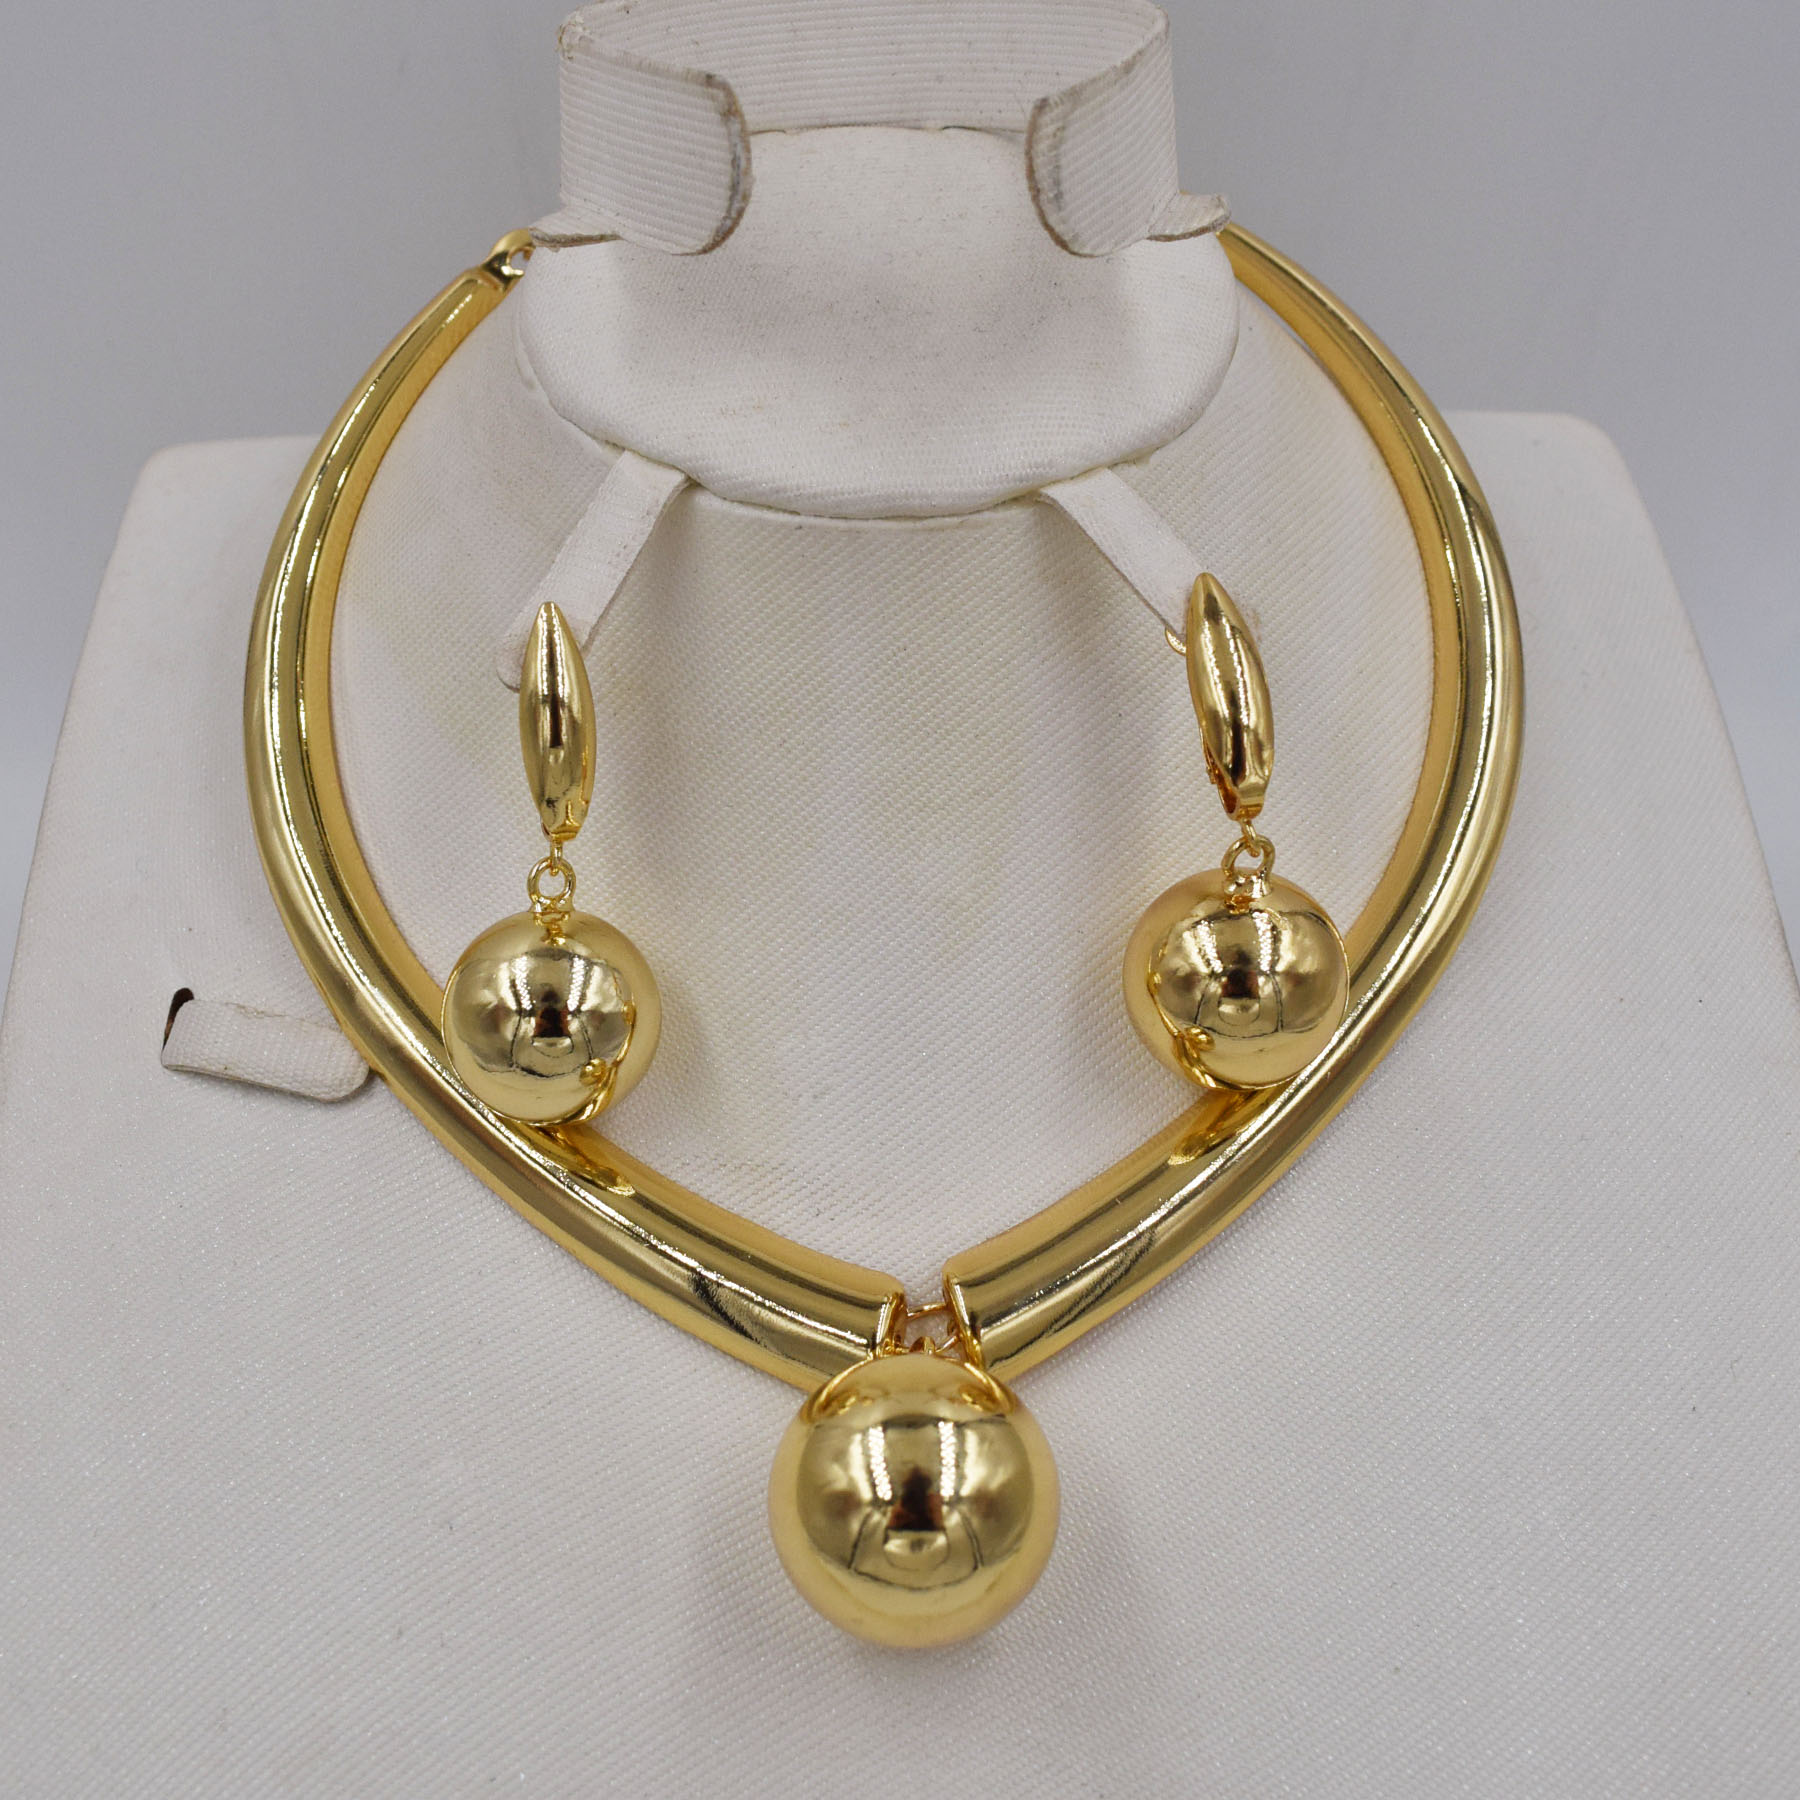 High Quality Ltaly 750 Gold color Jewelry Set For Women african beads jewlery fashion necklace set earring jewelryJewelry Sets   -